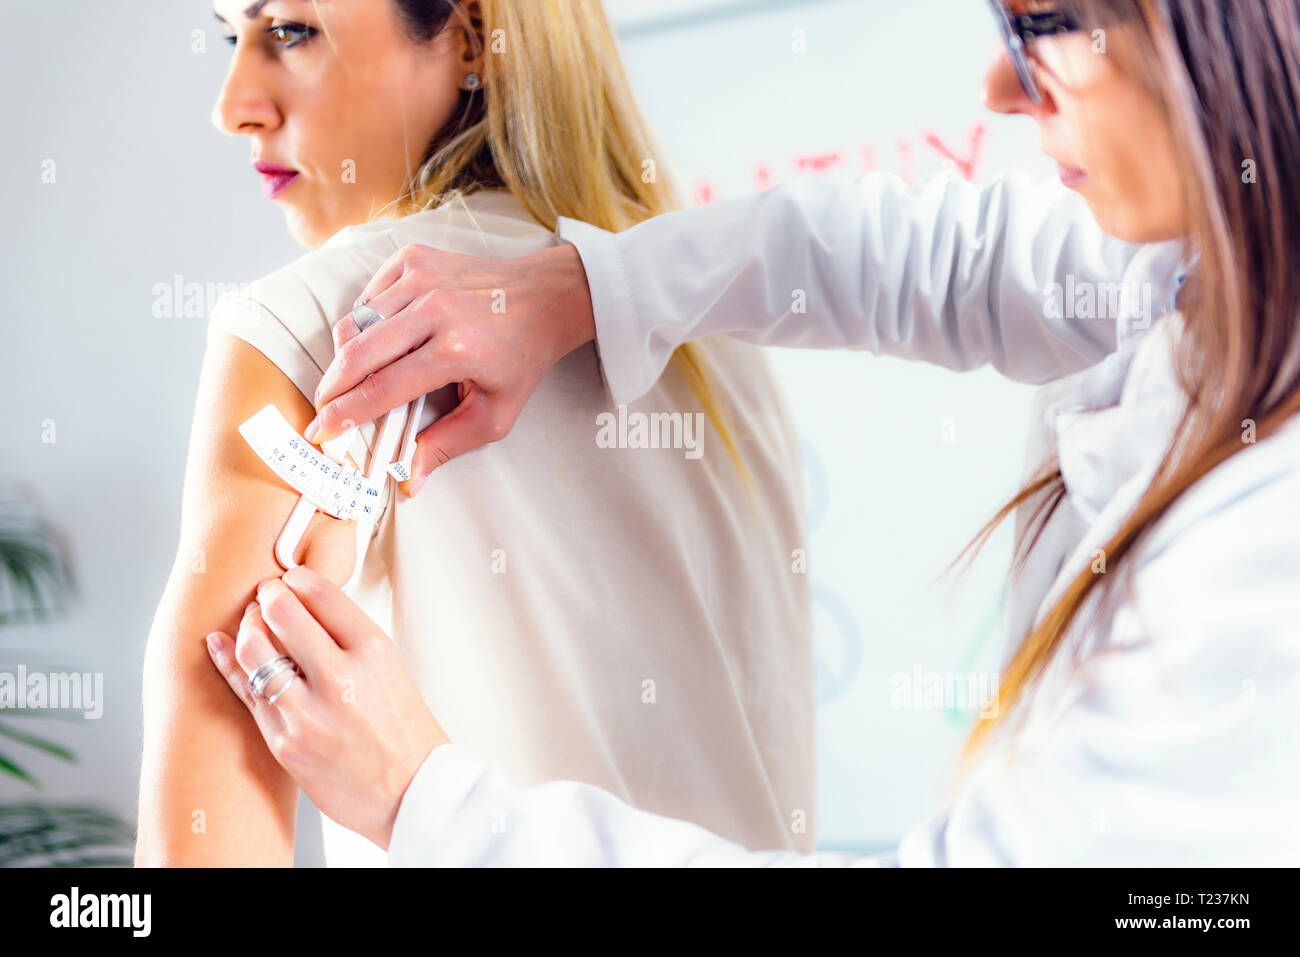 Nutritionist measuring female patient's body fat with callipers. - Stock Image